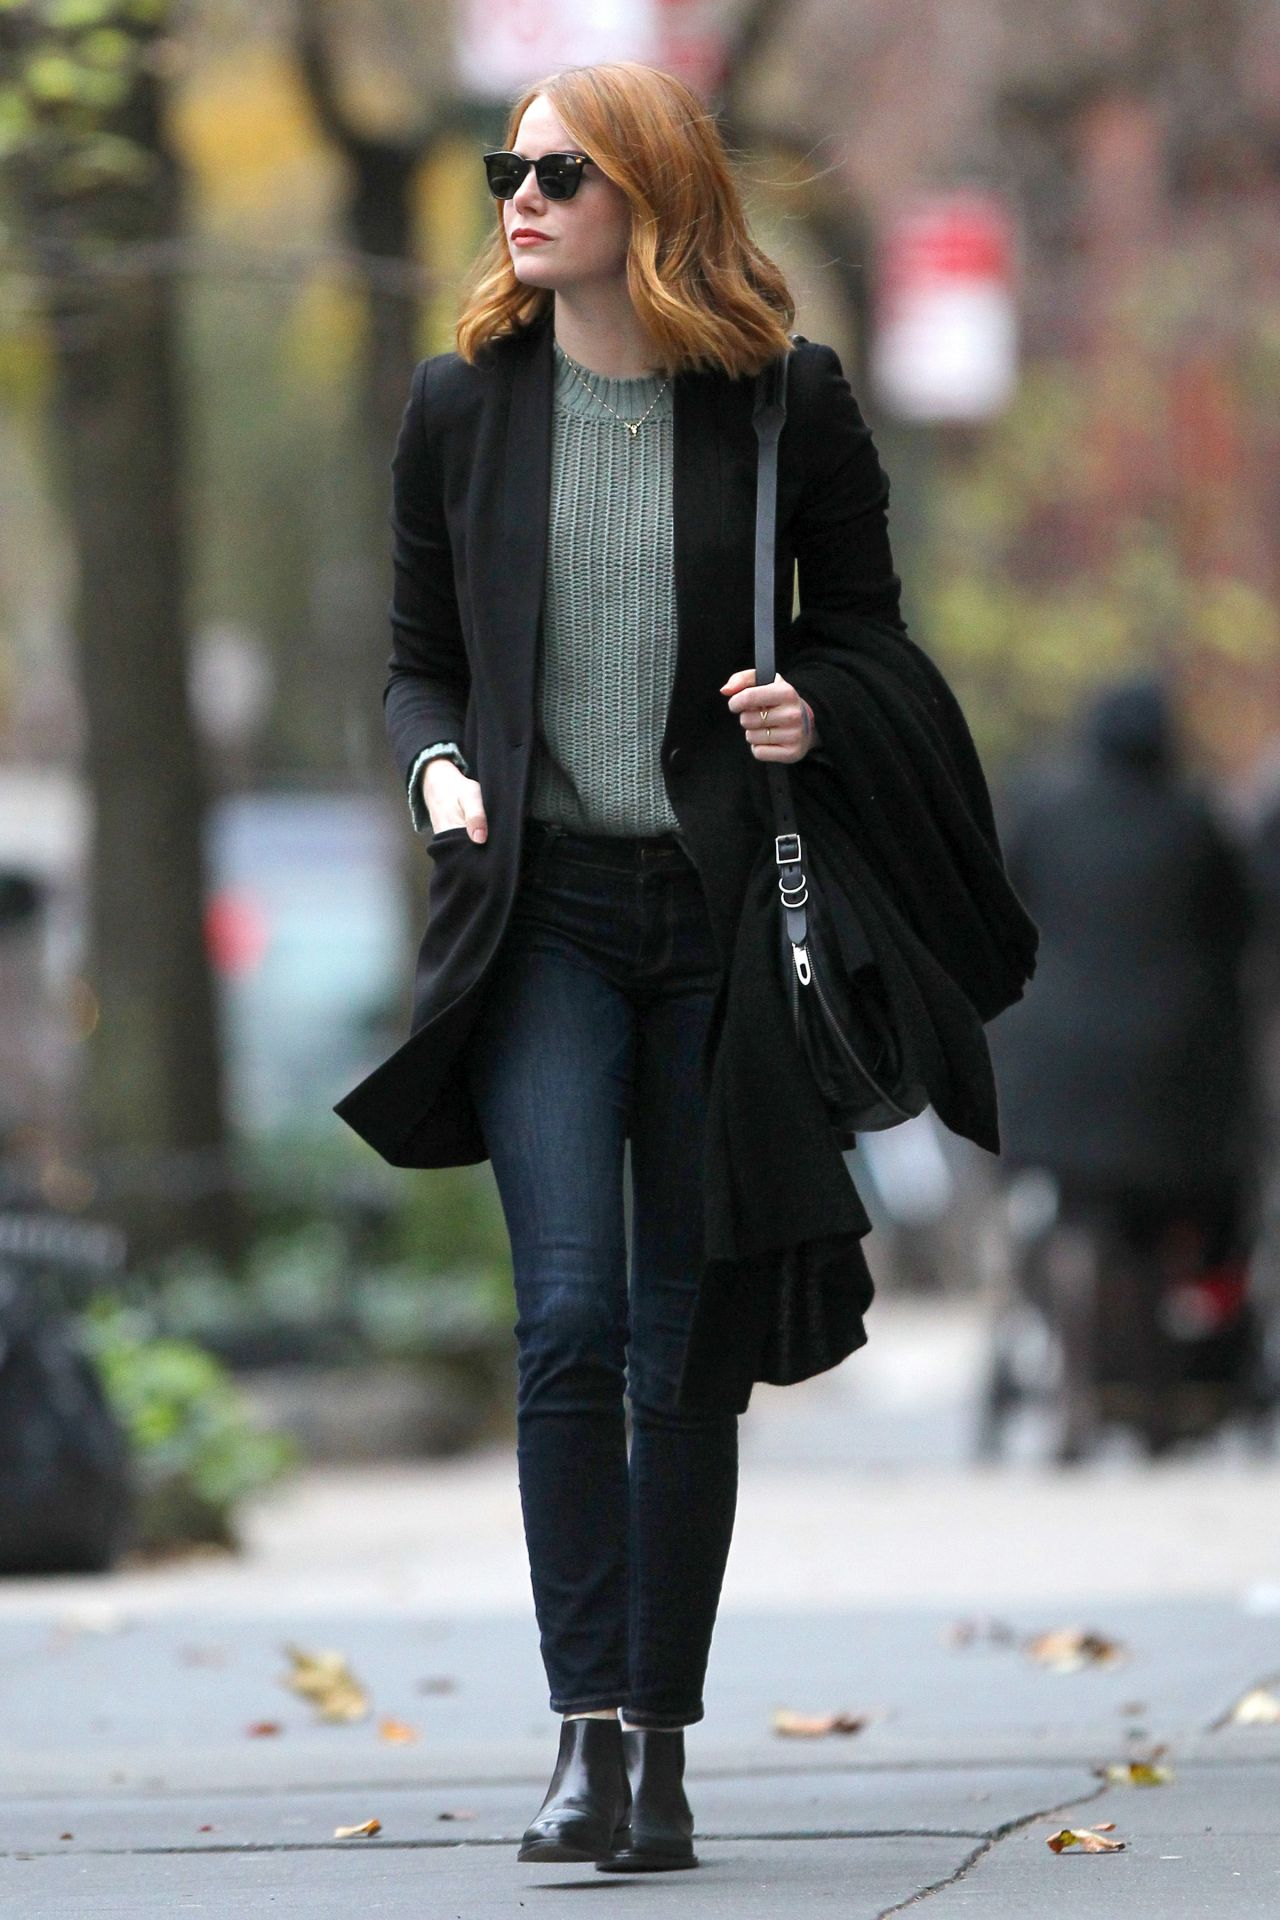 emma stone casual style  new york city 11182015